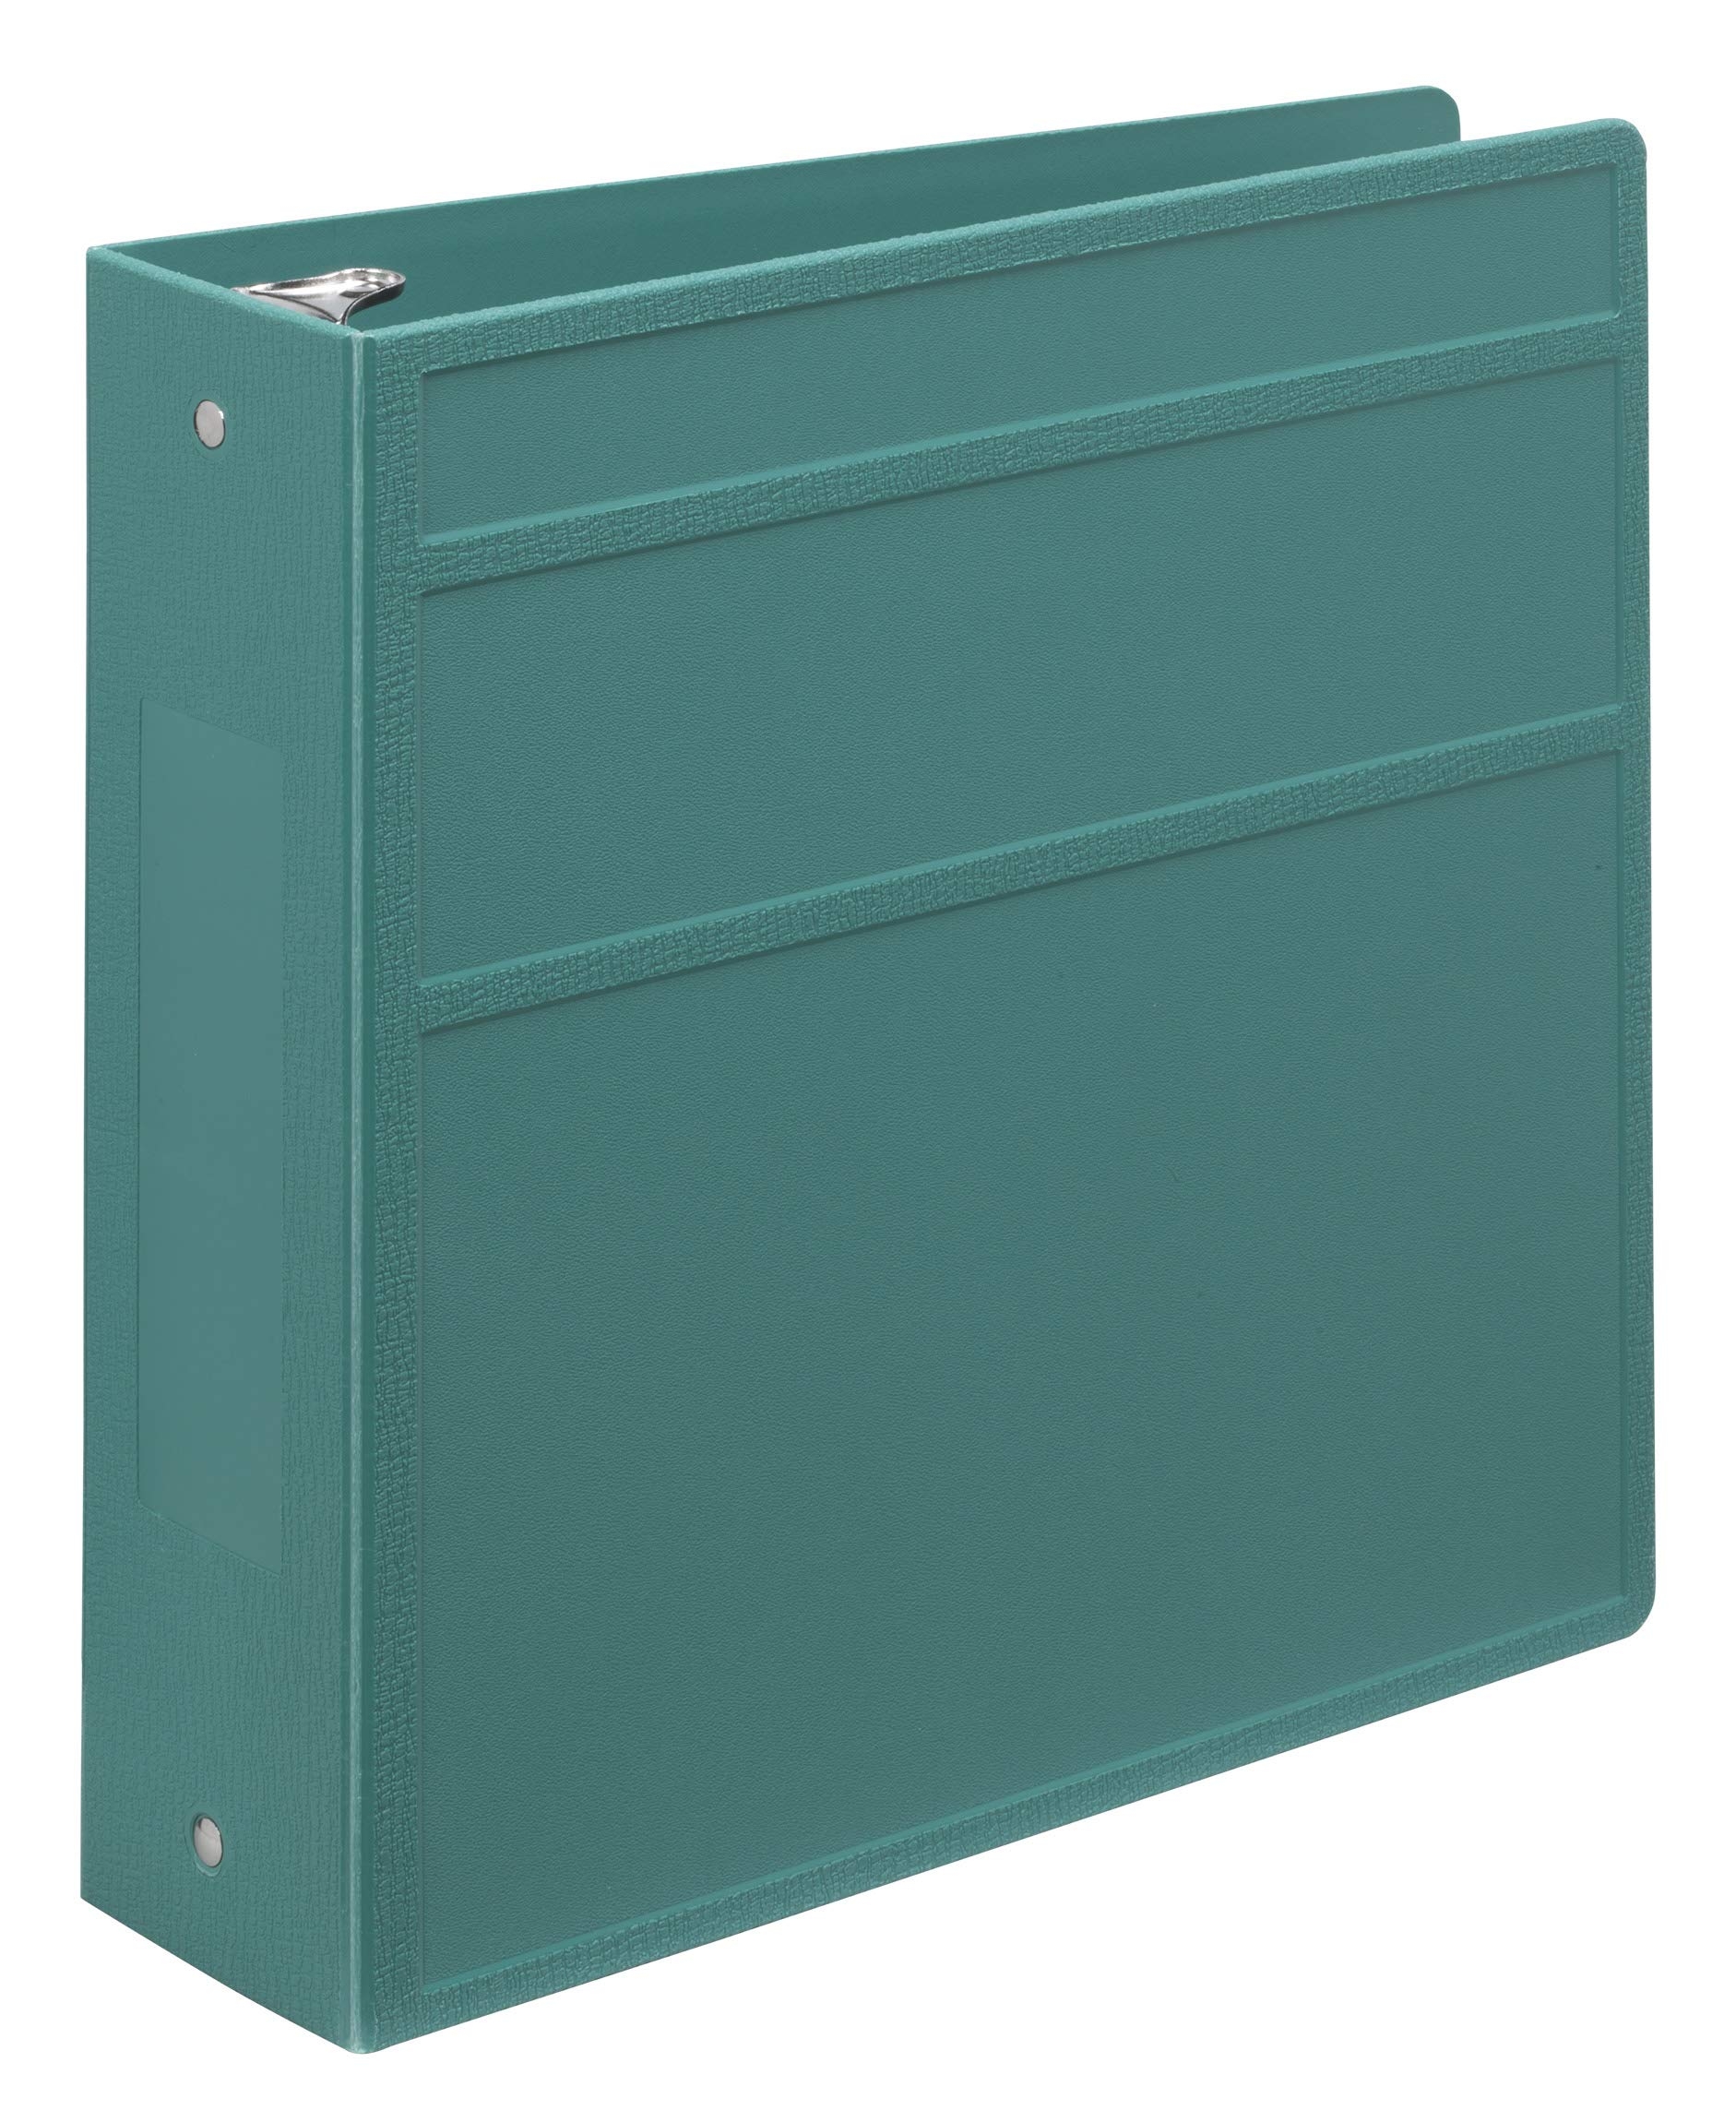 Carstens Heavy-Duty 3-Ring Binder - Side Opening (Teal, 3 Inch) by Carstens